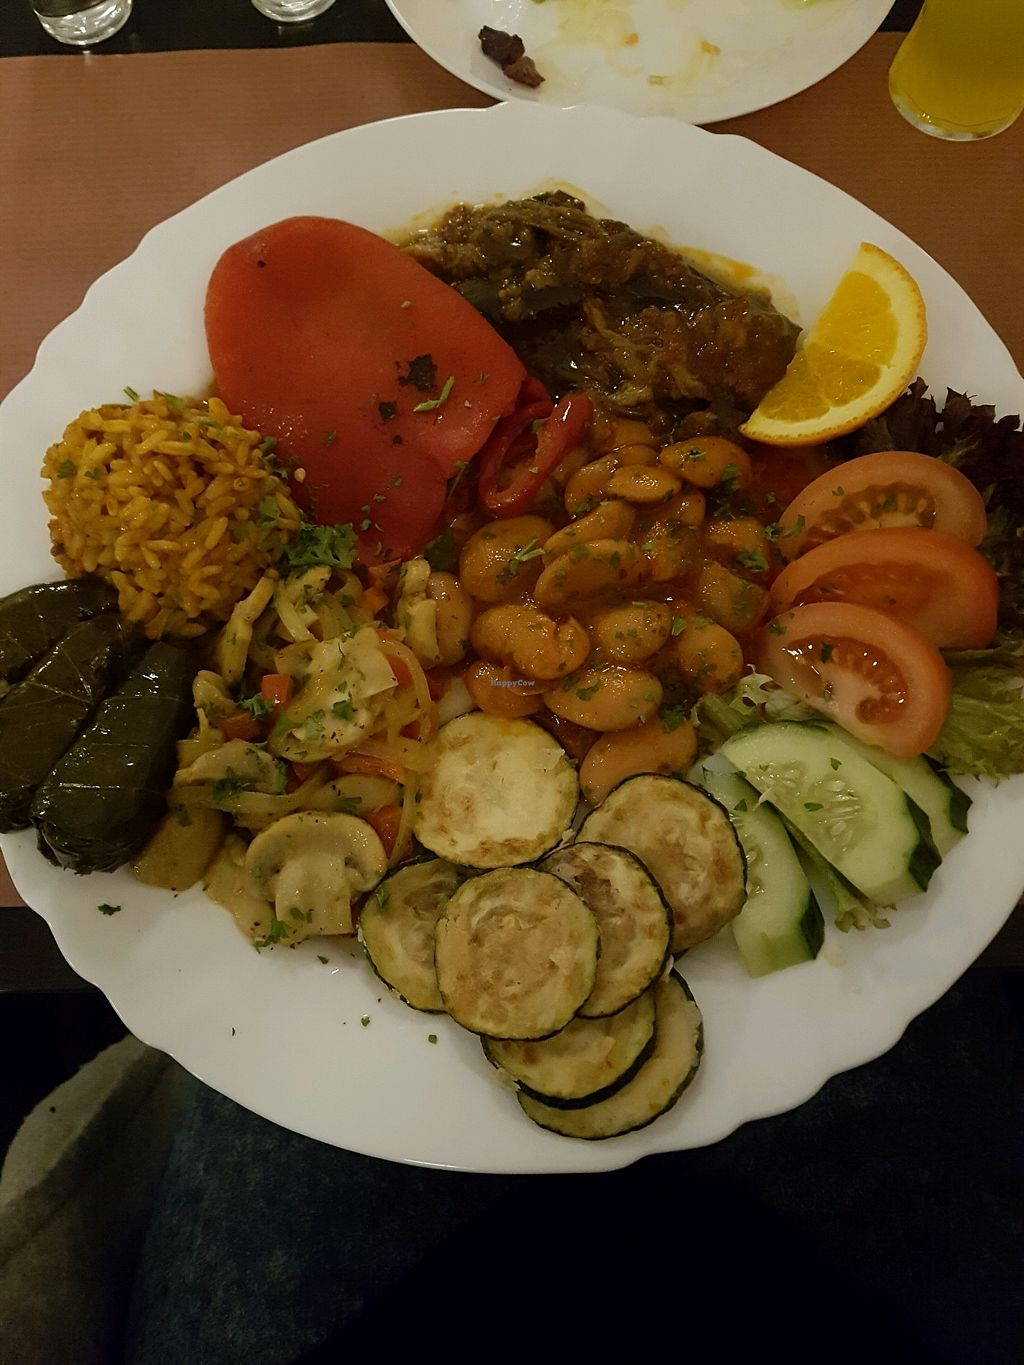 """Photo of Yamas Griechisches Restaurant  by <a href=""""/members/profile/lindamilanie"""">lindamilanie</a> <br/>Vegan dish <br/> November 23, 2017  - <a href='/contact/abuse/image/100016/328481'>Report</a>"""